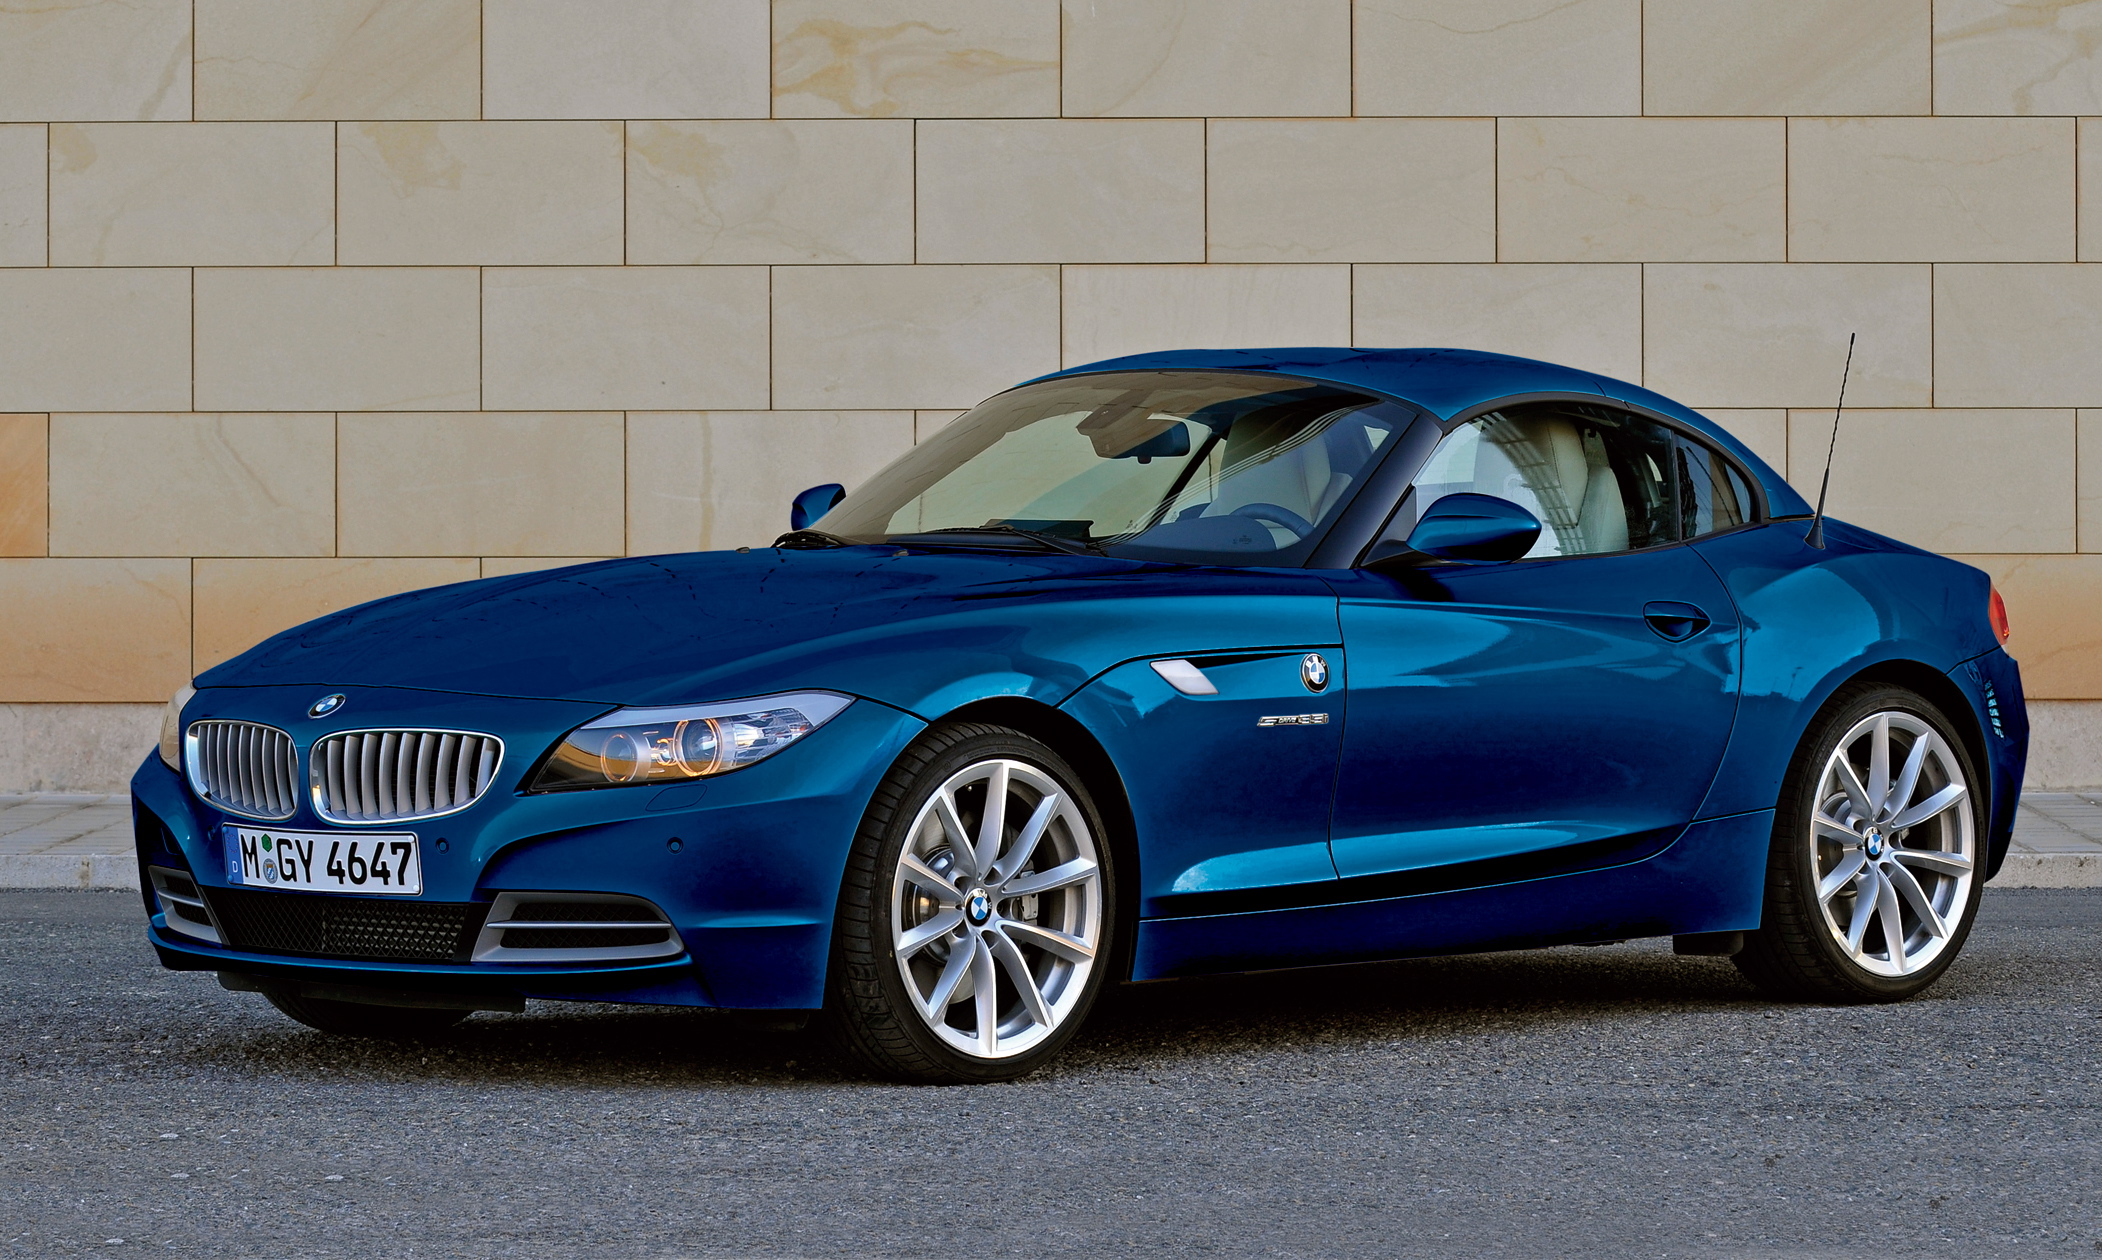 2009 Bmw Z4 Information And Photos Momentcar